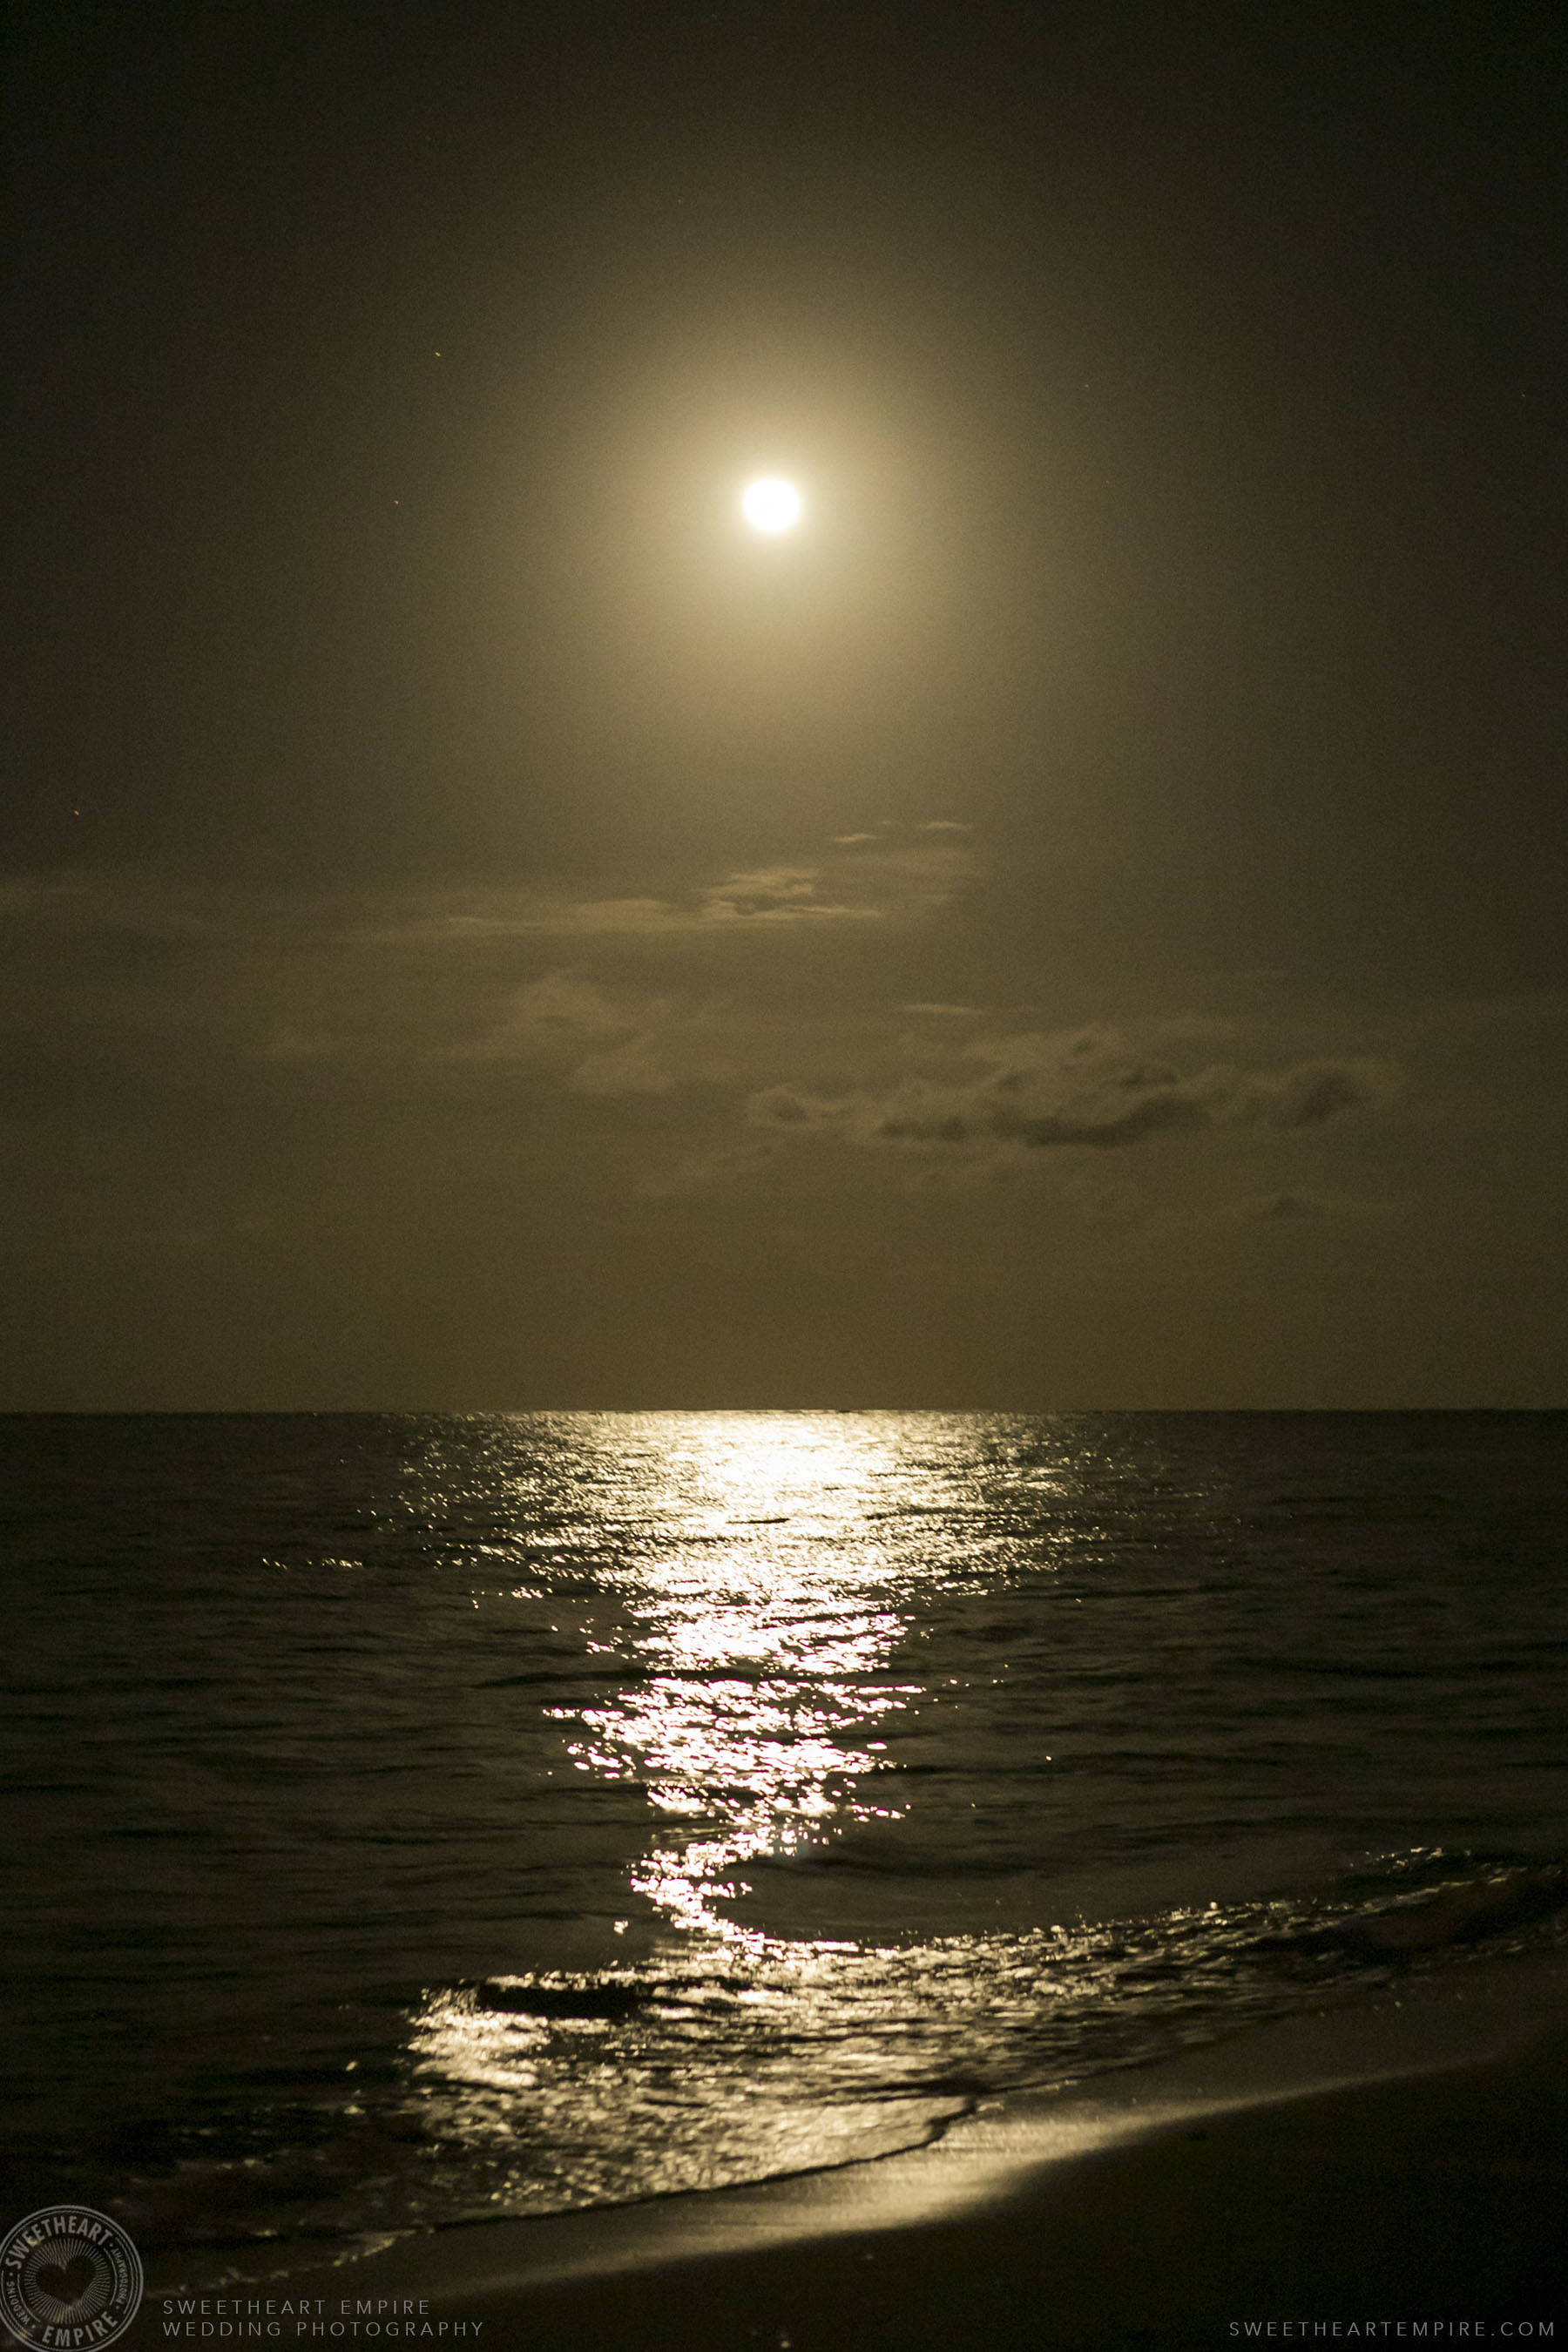 Full moon at Iberostar Grand Hotel Rose Hall, in Montego Bay, Jamaica